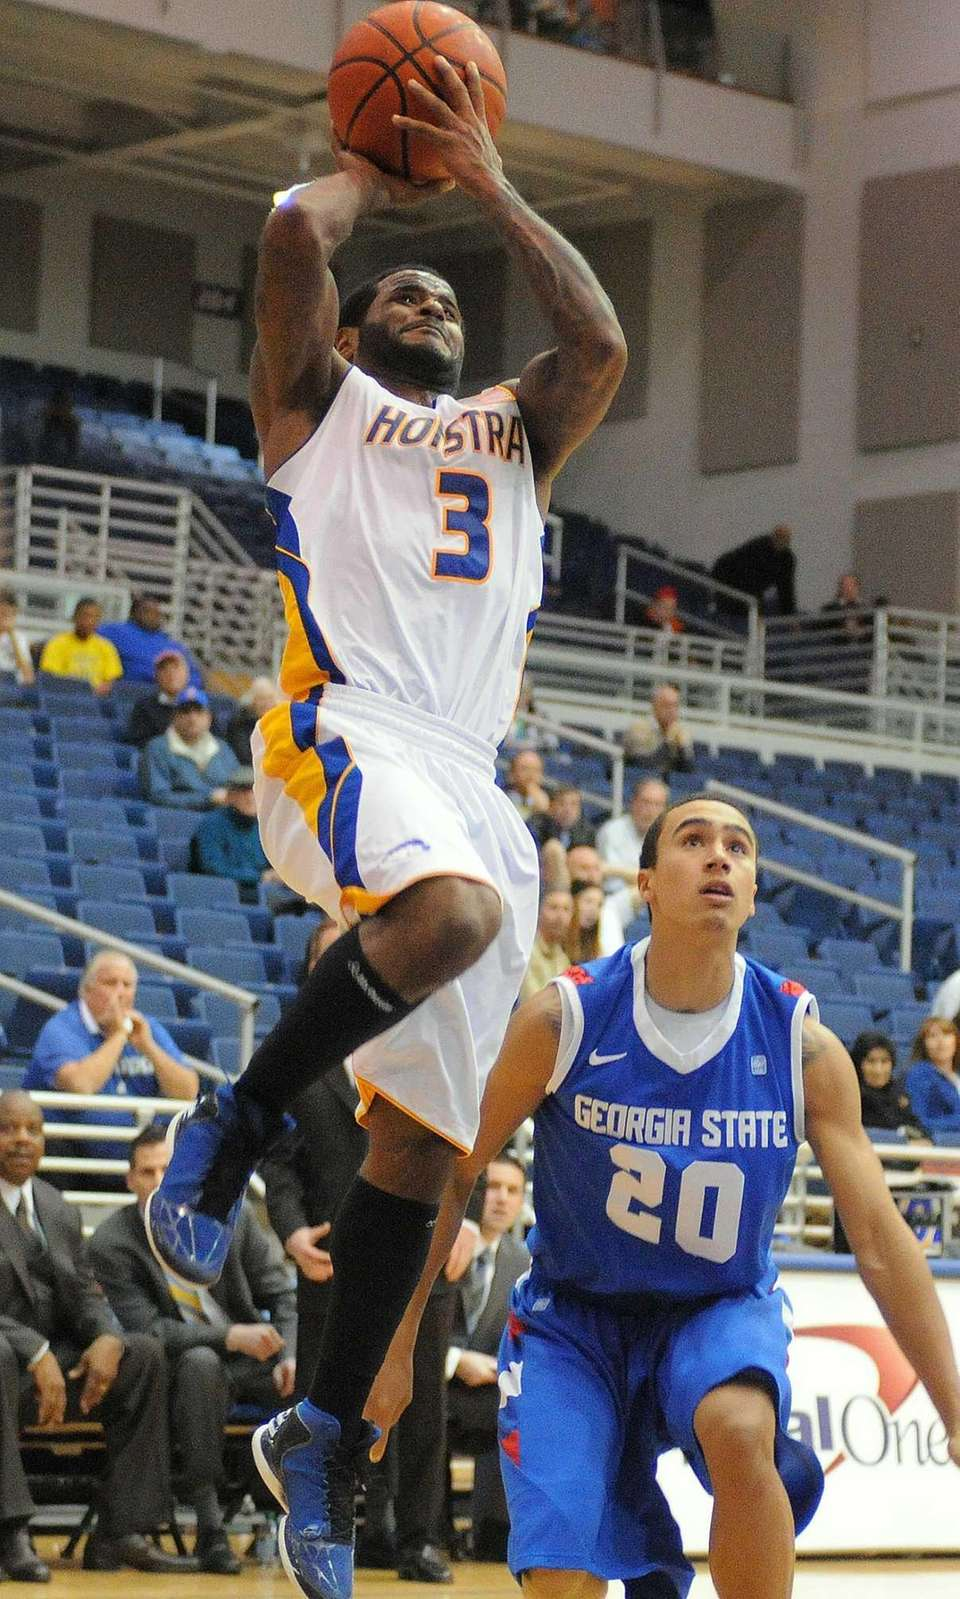 Hofstra's Stevie Mejia drives inside the paint and